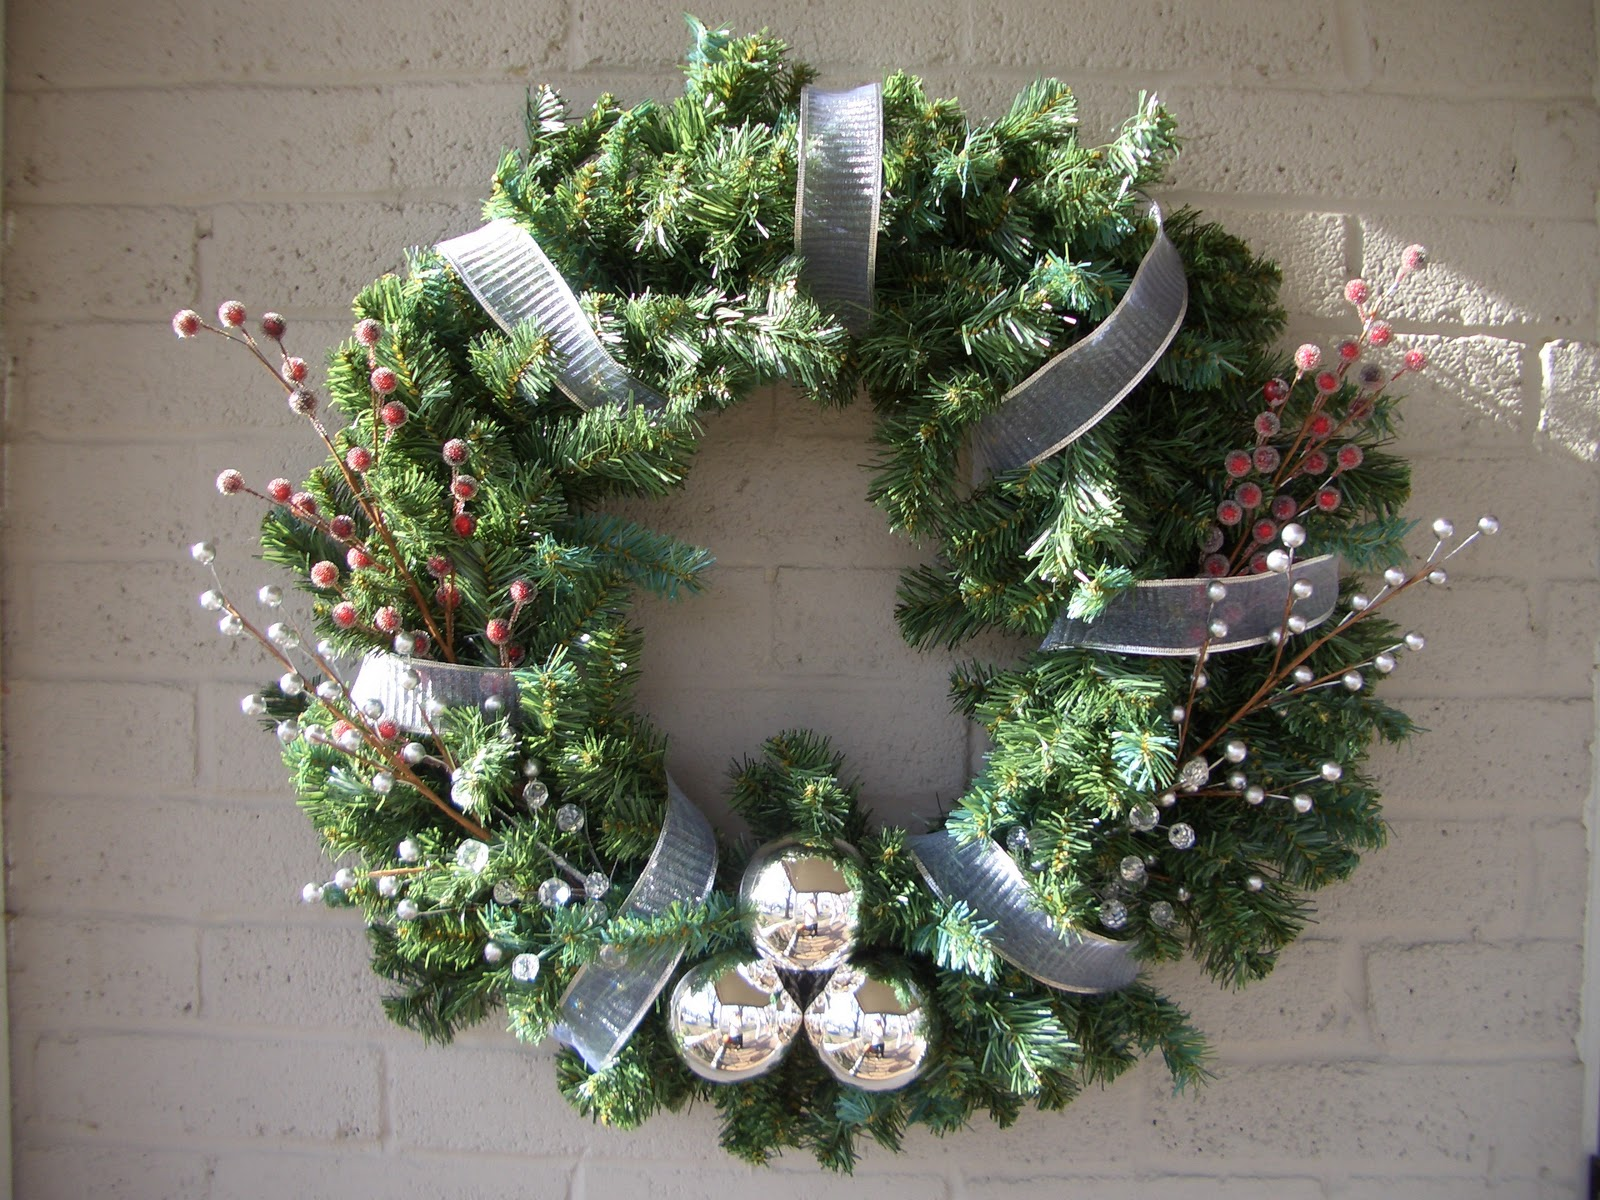 Cool home creations christmas decor 2010 greenery wreath - Decor de noel a faire ...